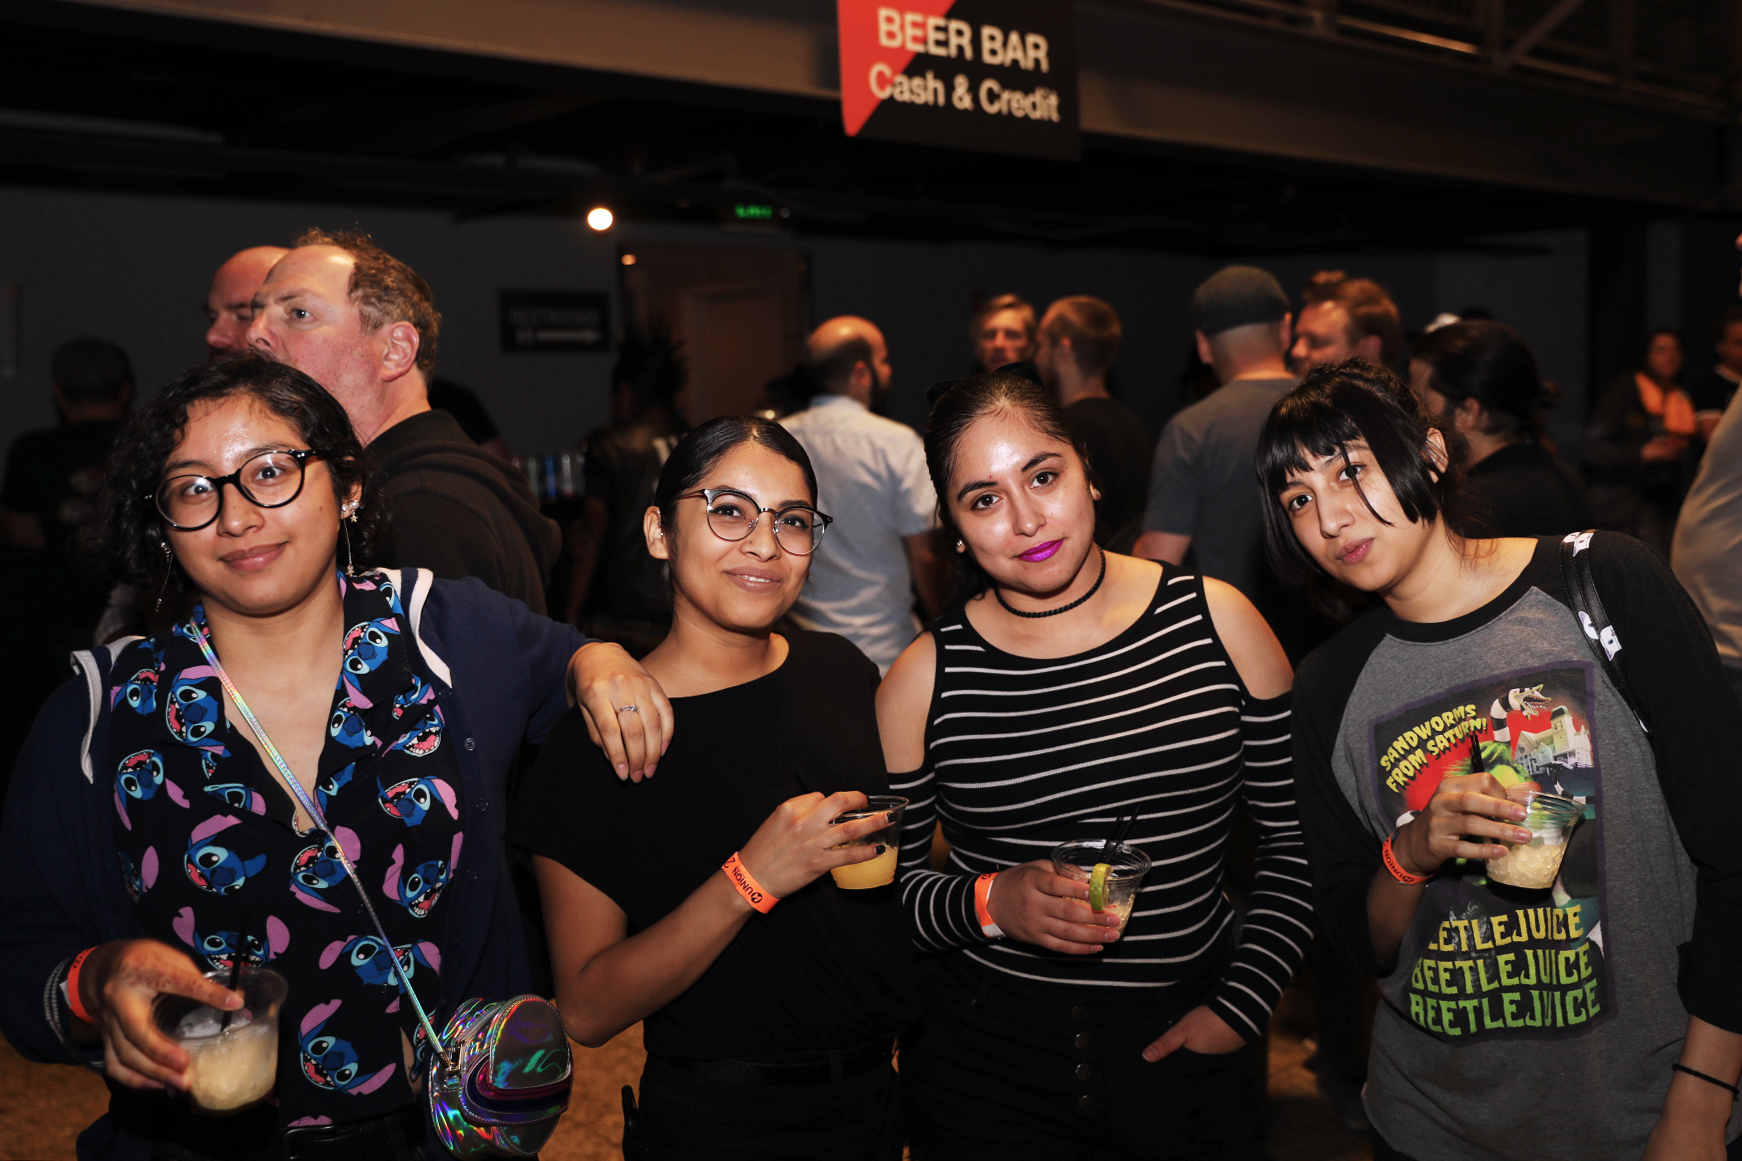 Melanie, Analuz, Silmara and Lily grab a beer before the show. Photo: @Lmsorenson